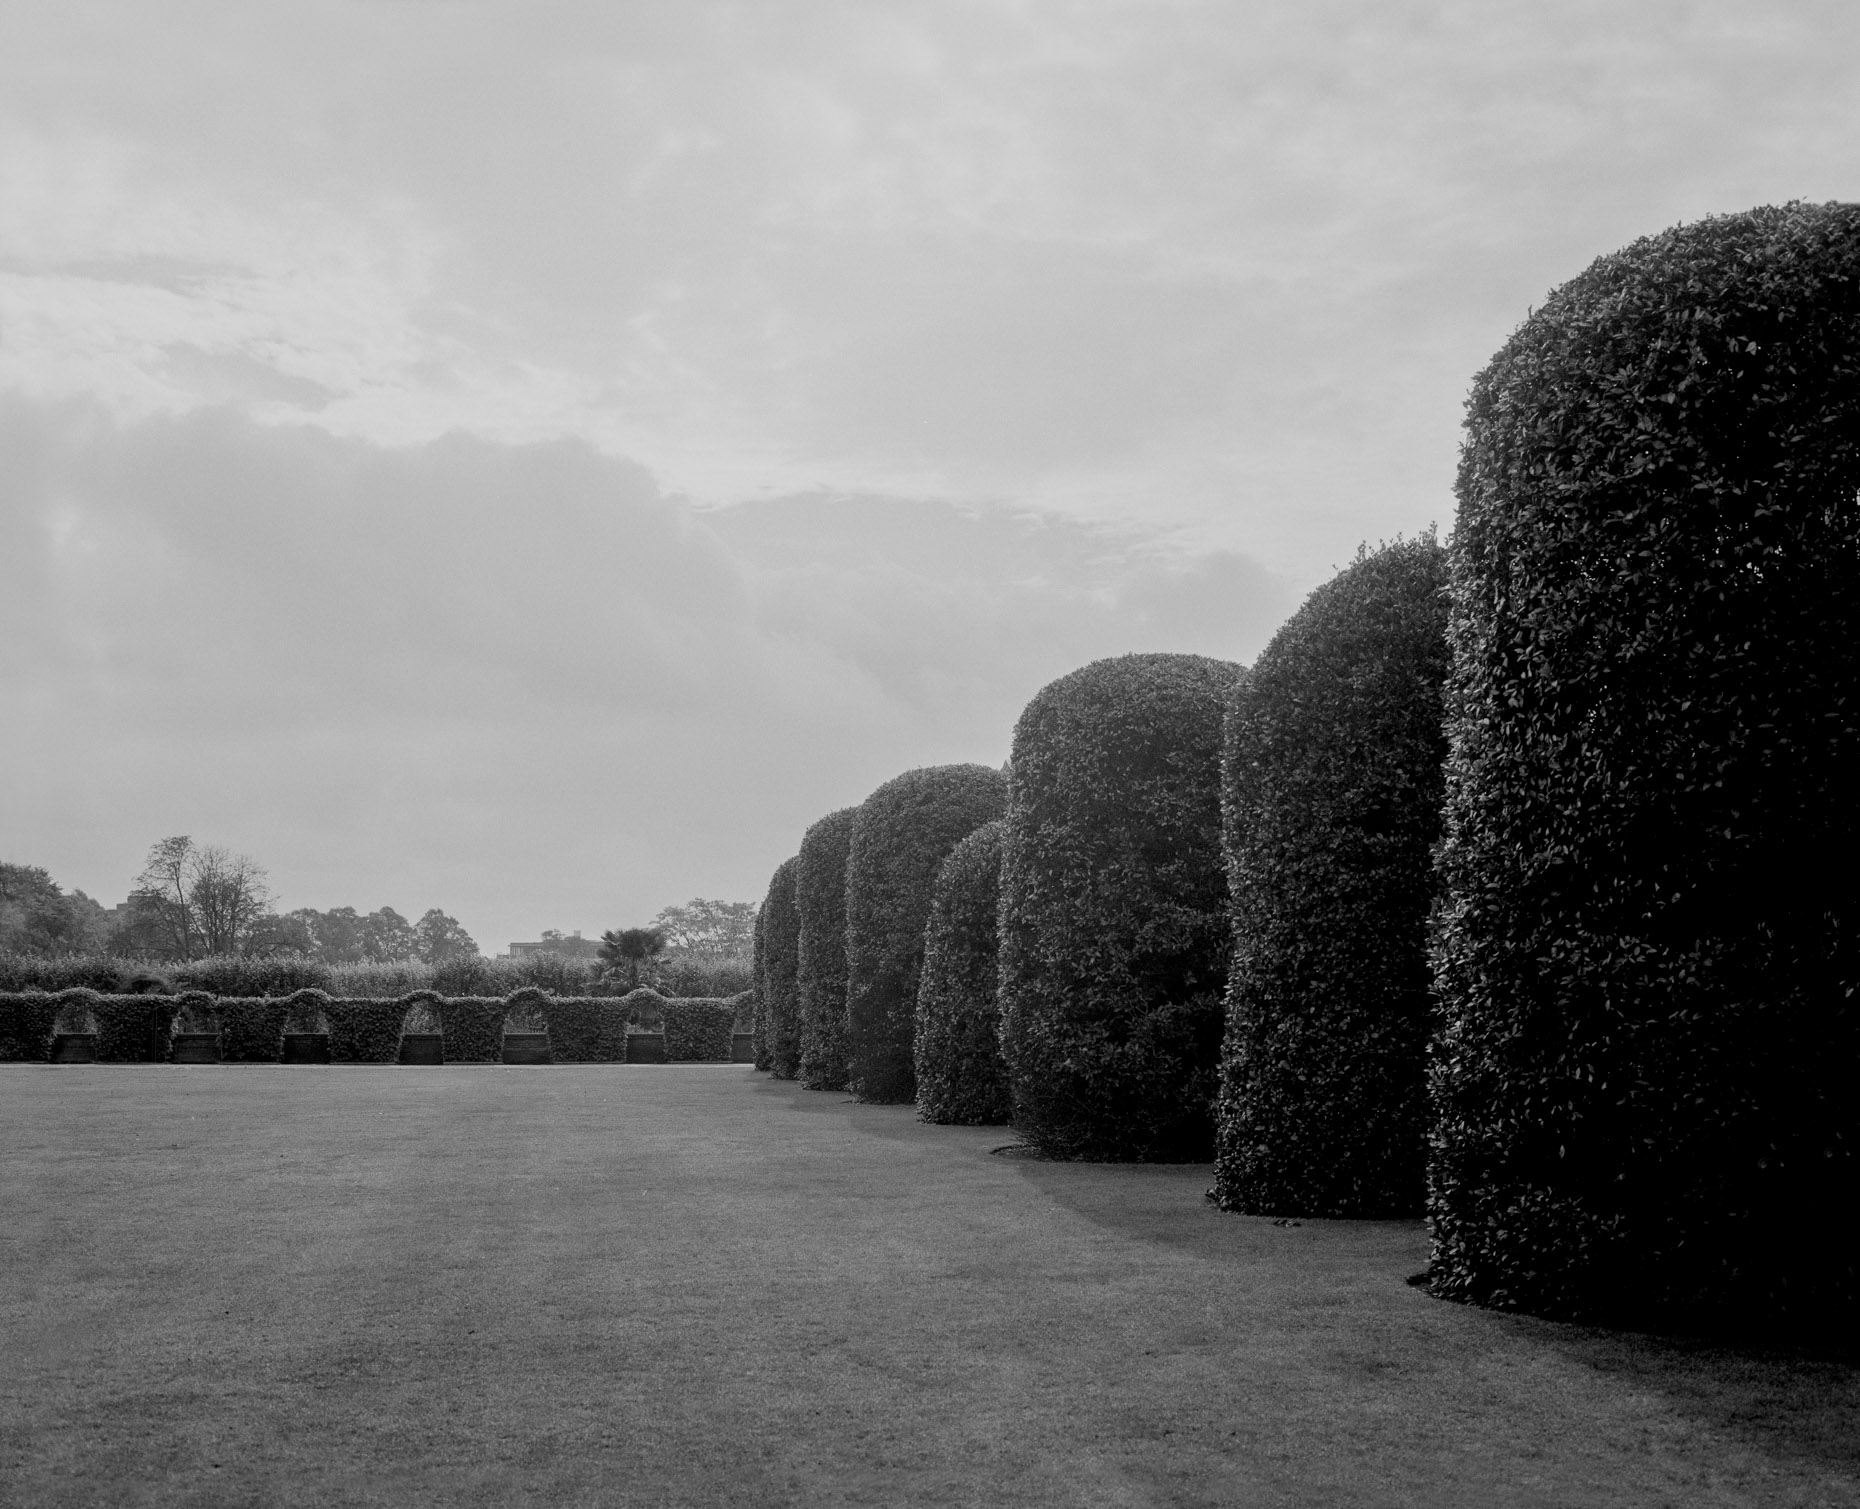 Axel Bernstorff, Collectable limited edition fine photographic art prints. Kensington Park Gardens IV. royal residence in the Royal Borough of Kensington and Chelsea in London, England.